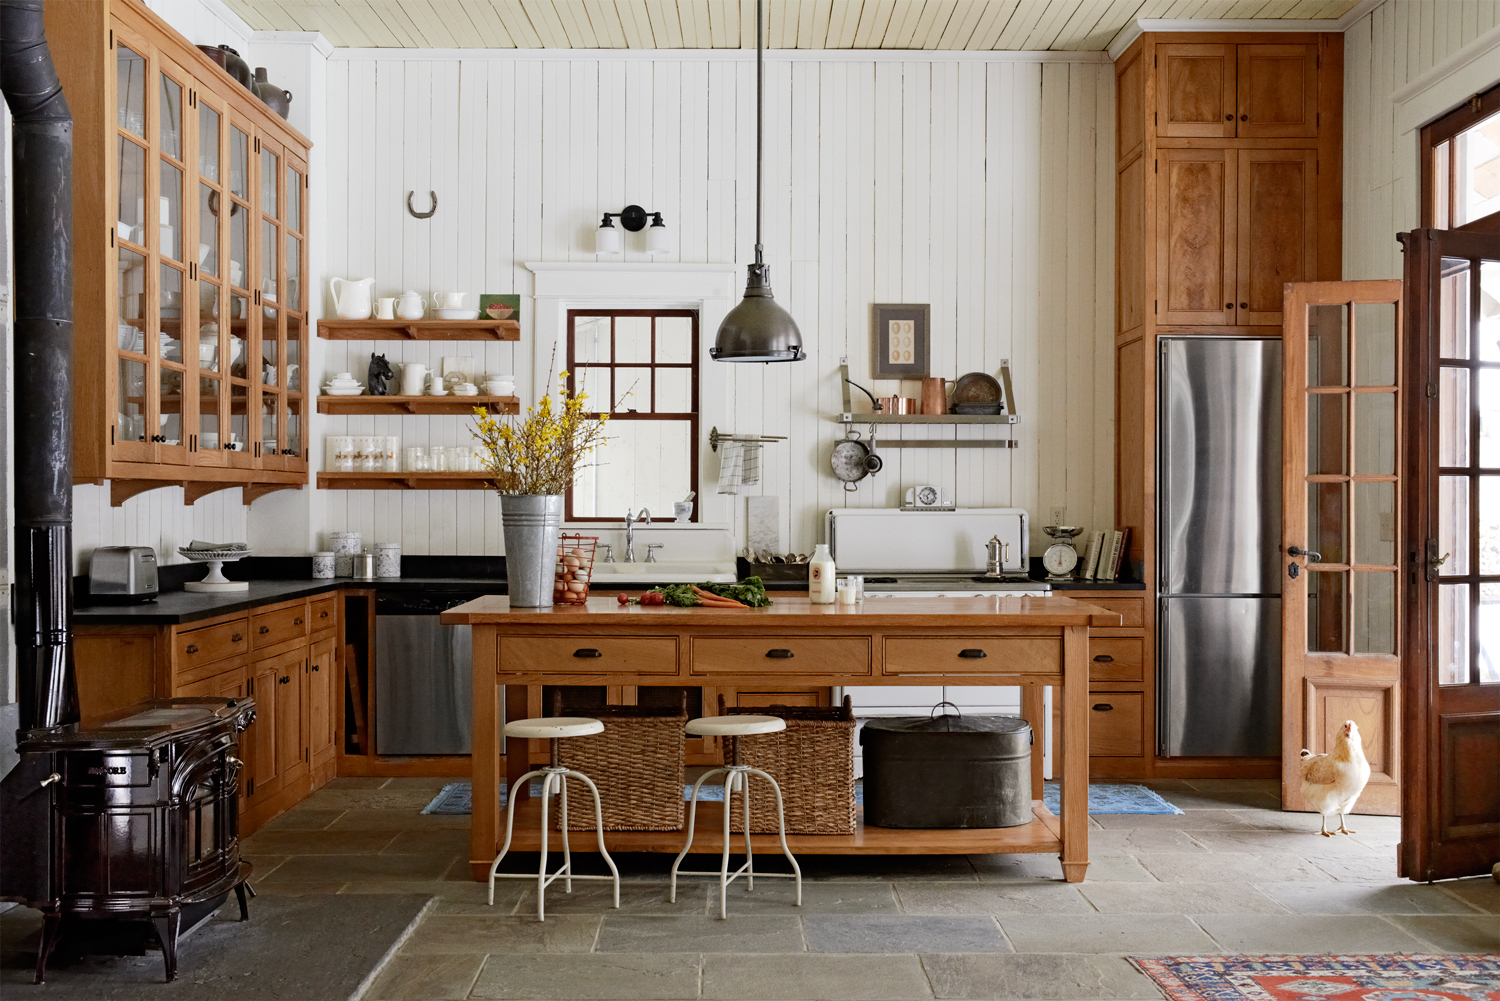 kitchen design ideas country style swing kitchen rh swingkitchen blogspot com